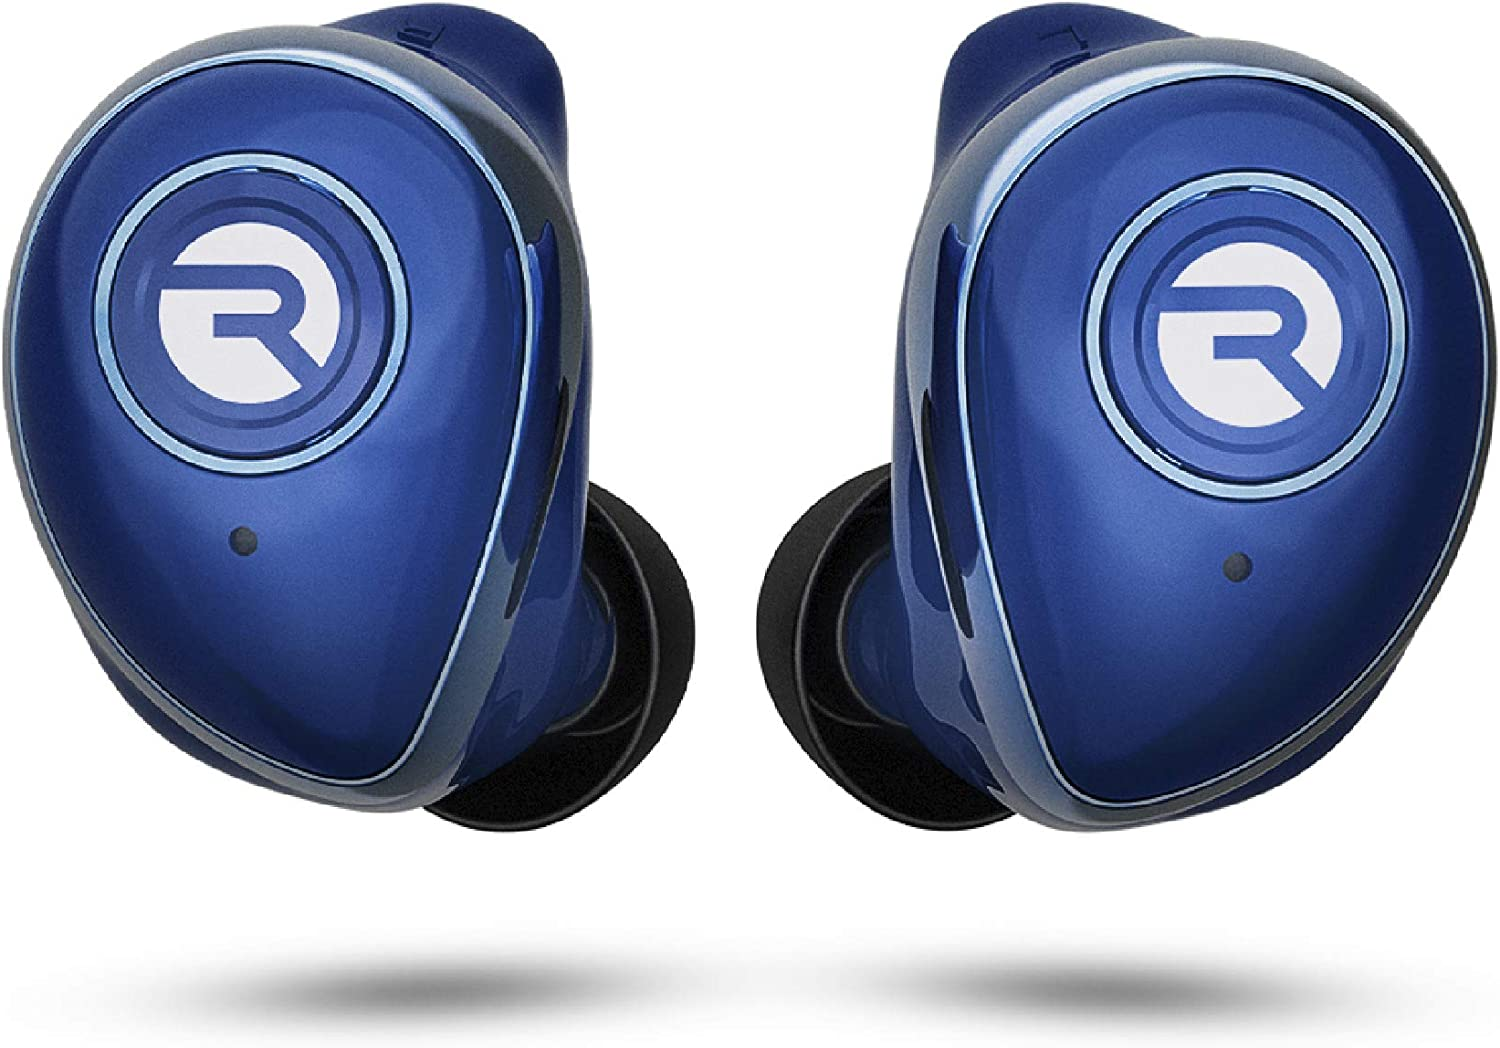 Raycon earbuds